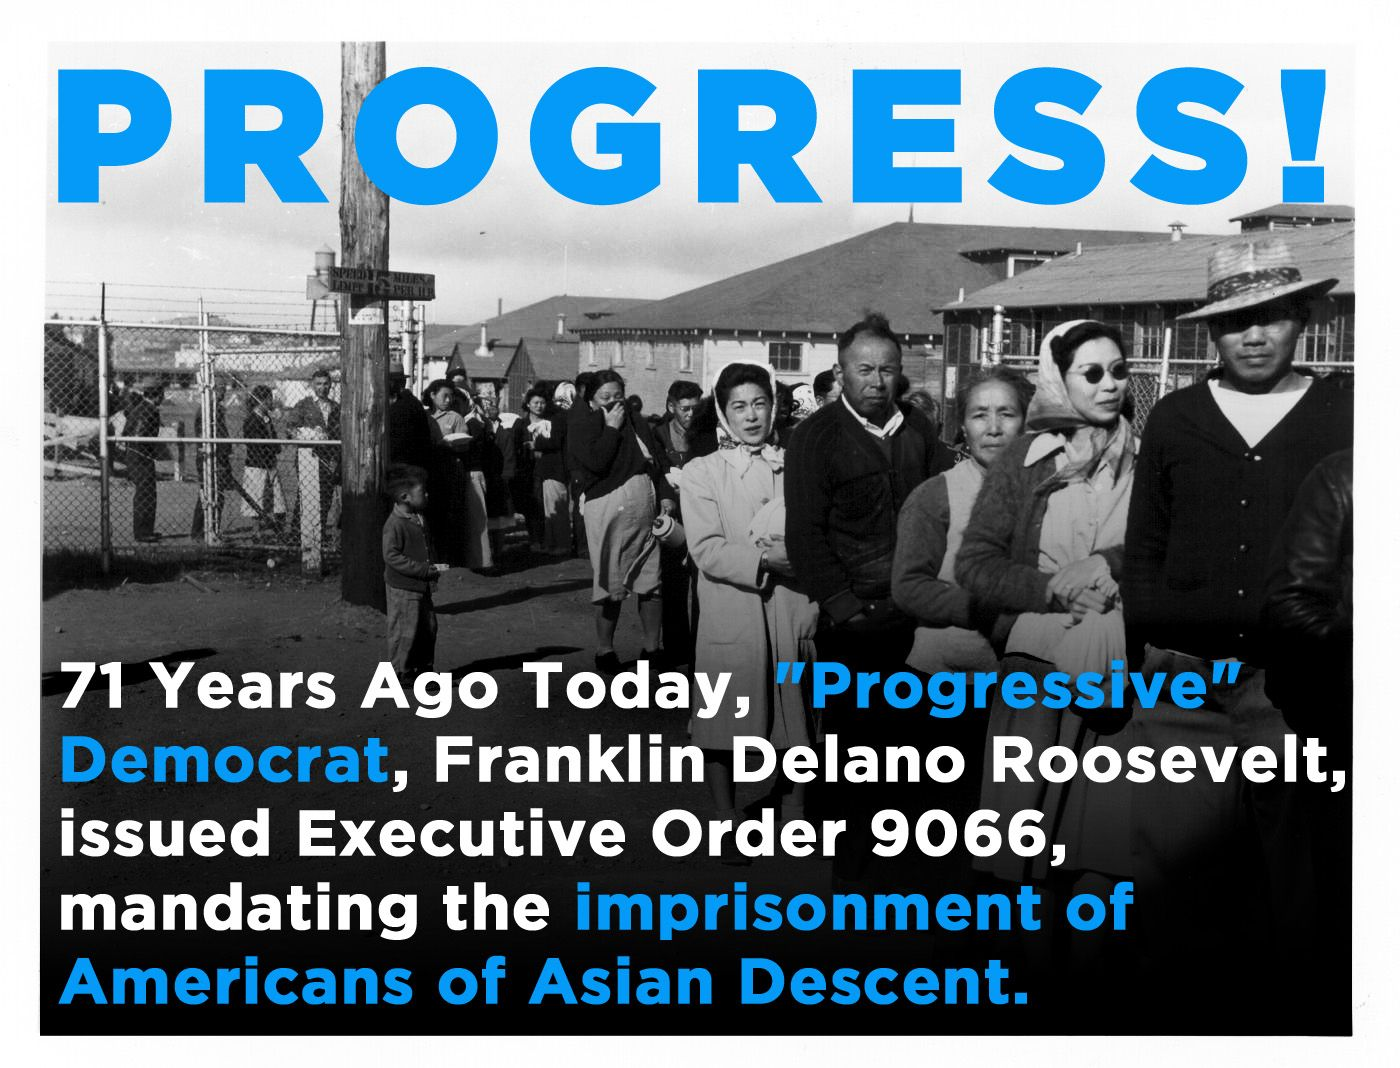 """""""Progressivism"""" has a long and shameful history of OPPOSING progress in the United States. Woodrow Wilson, the 1st progressive, opposed women's rights, segregated the federal govt  screened KKK recruitment film """"Birth of a Nation"""" in the White House. FDR rounded up Asian Americans  put them in concentration camps. The only progress """"progressives"""" have ever stood for is progressively more powerful government."""